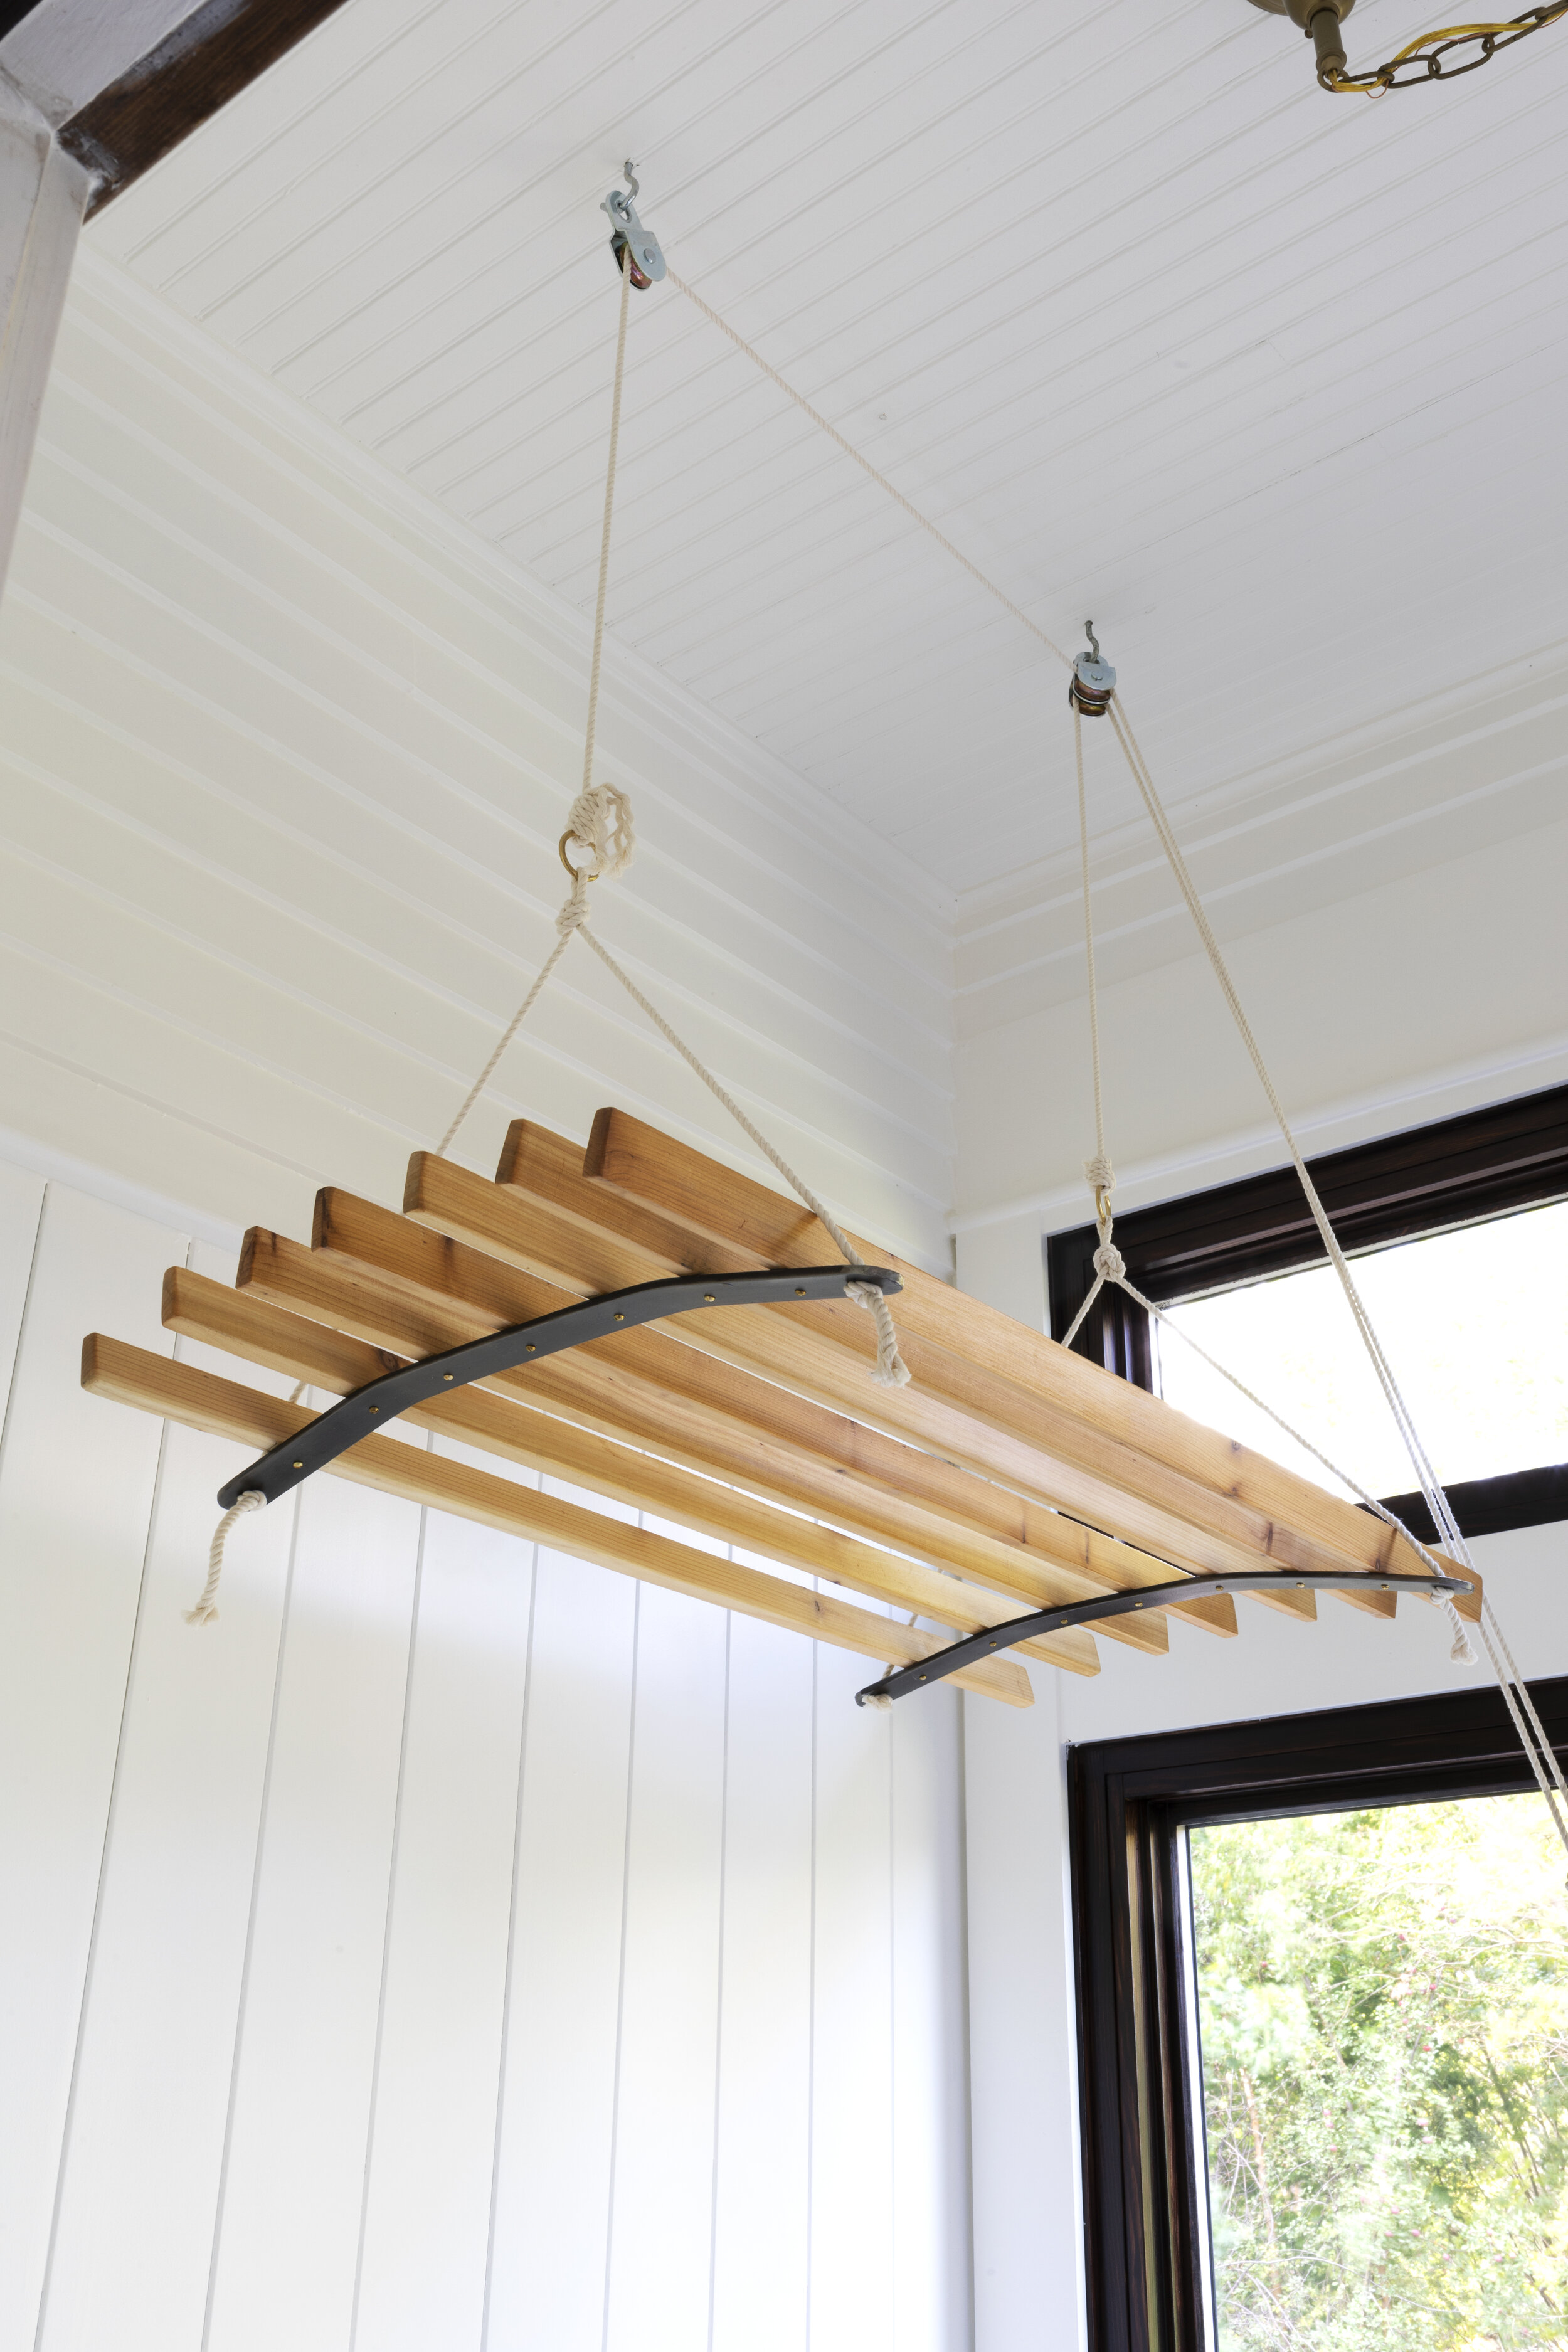 The Grit and Polish - Farmhouse Laundry Hanging Dryer Airer 2.jpg